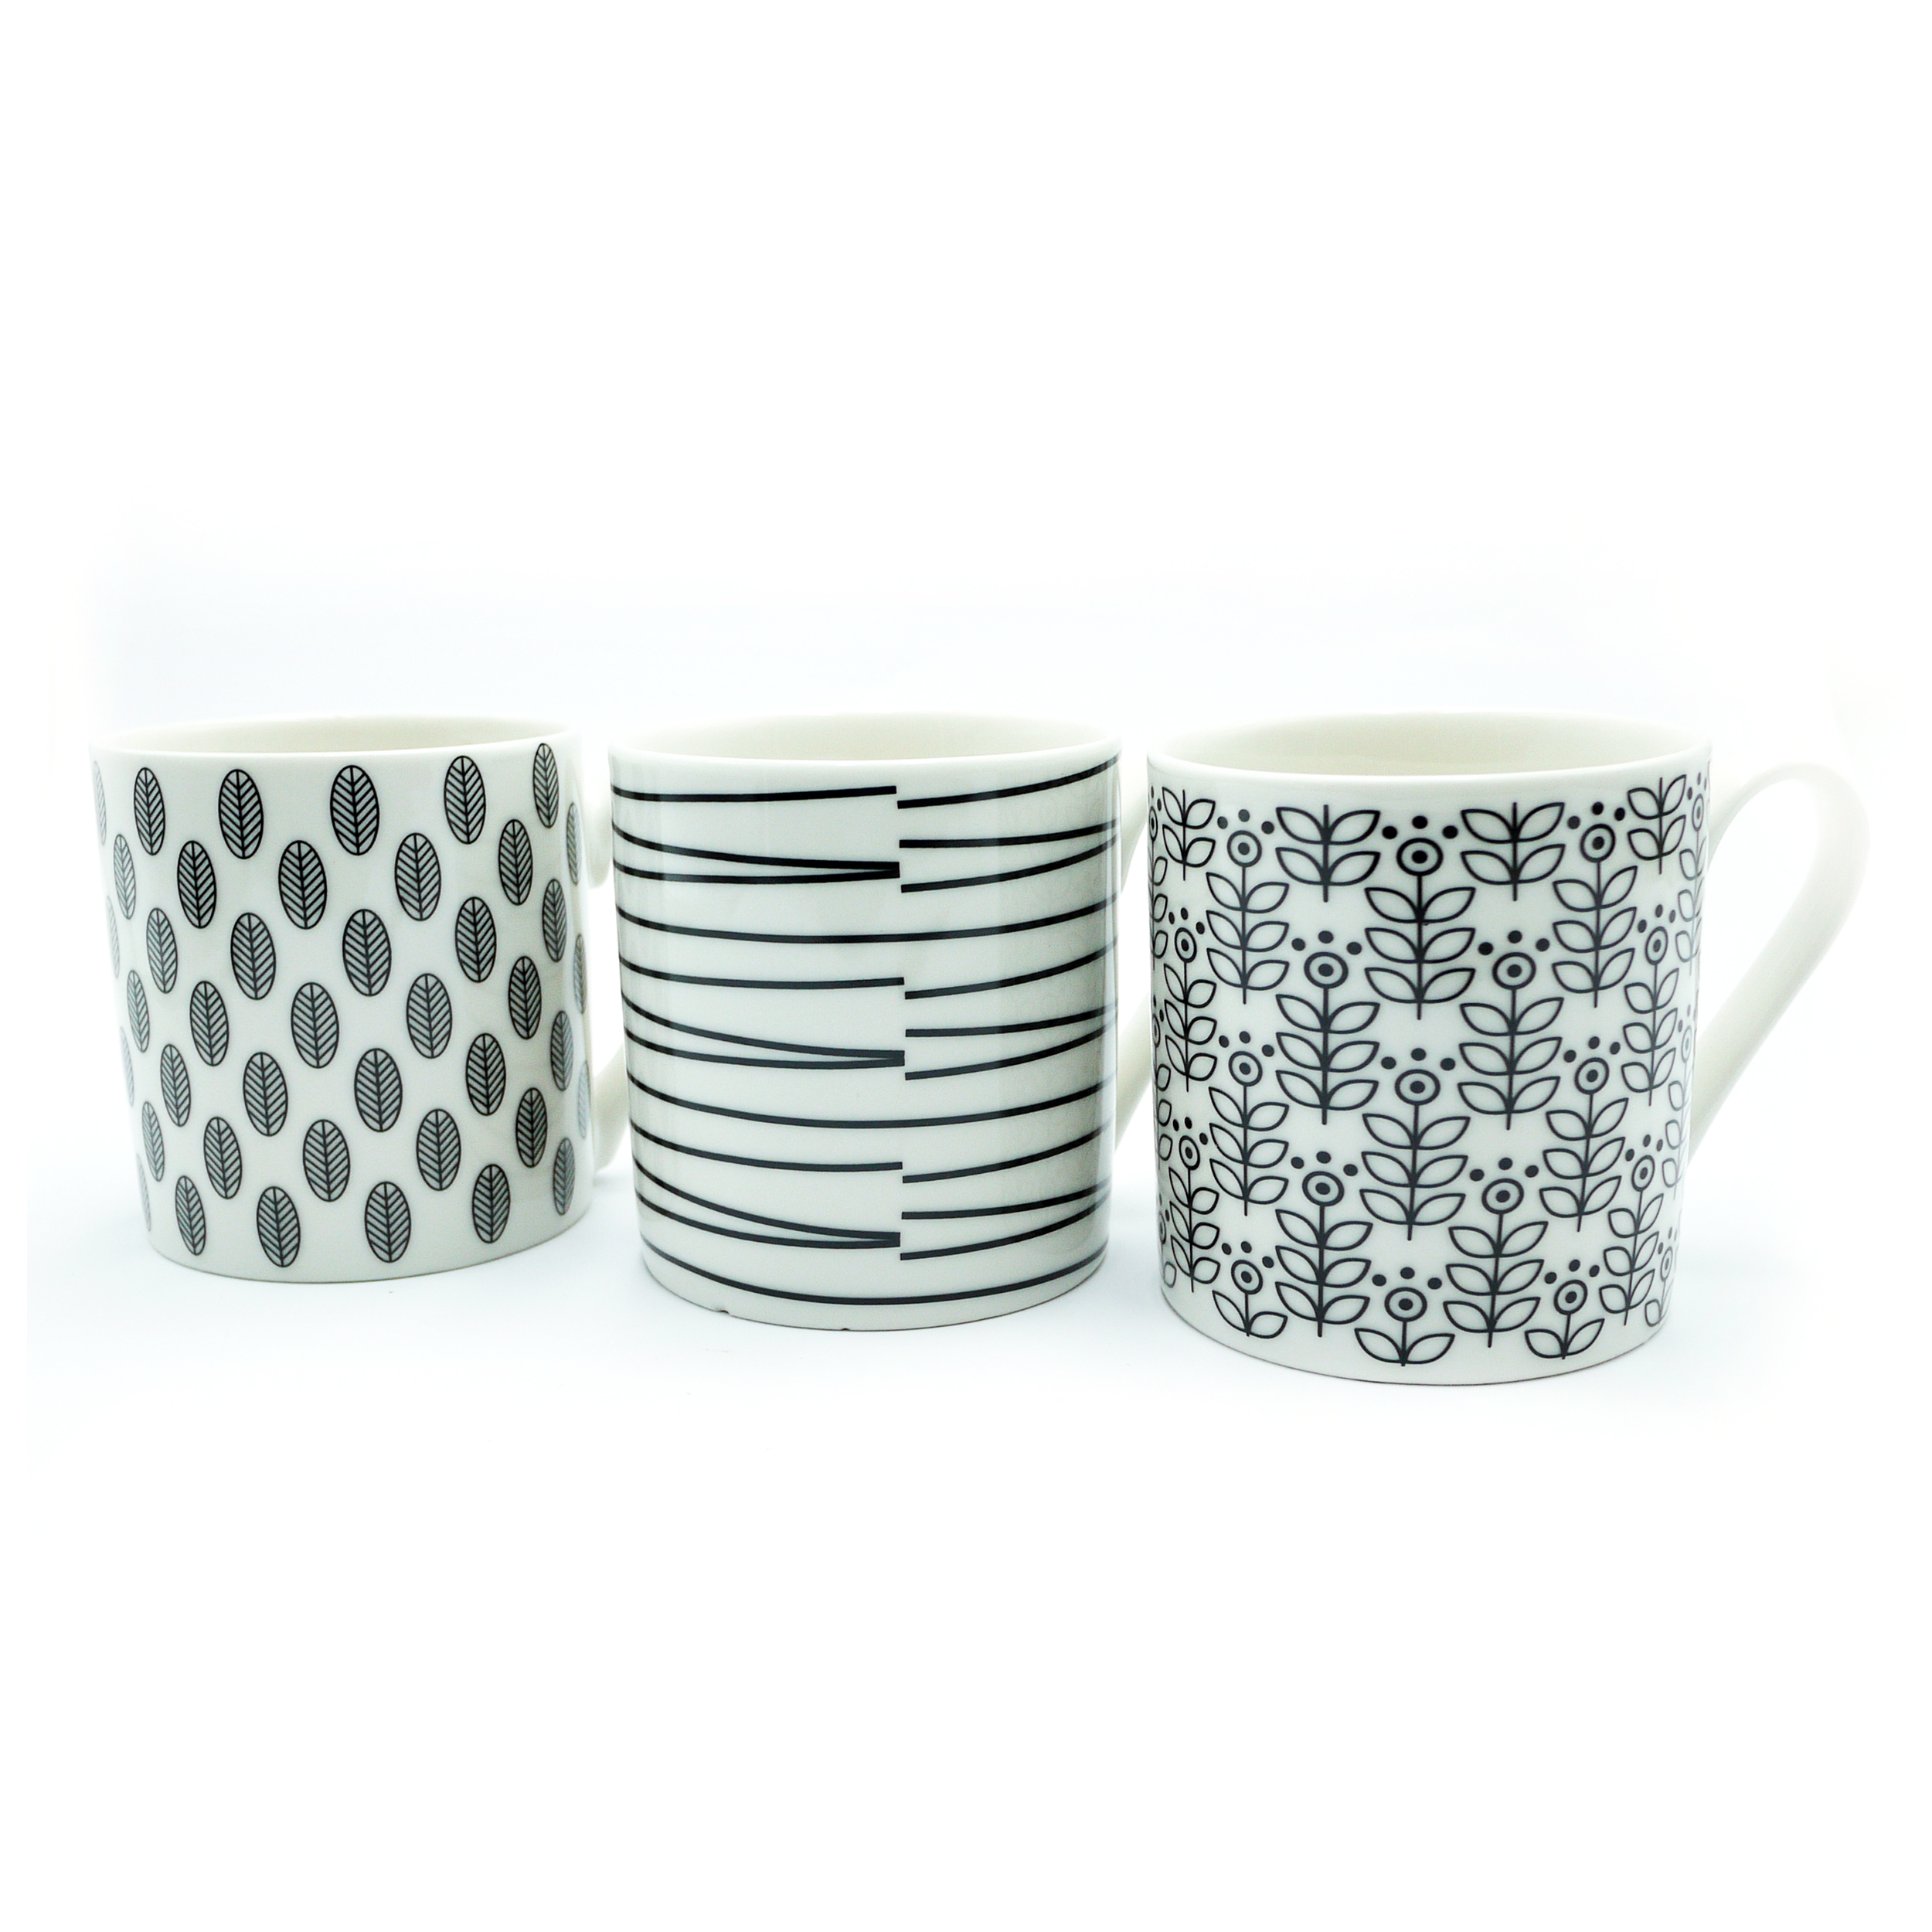 Domestic disposable cups or glasses or lids Squat Mugs Patterned 12oz Black & White Ref 0399290 [Pack 12]